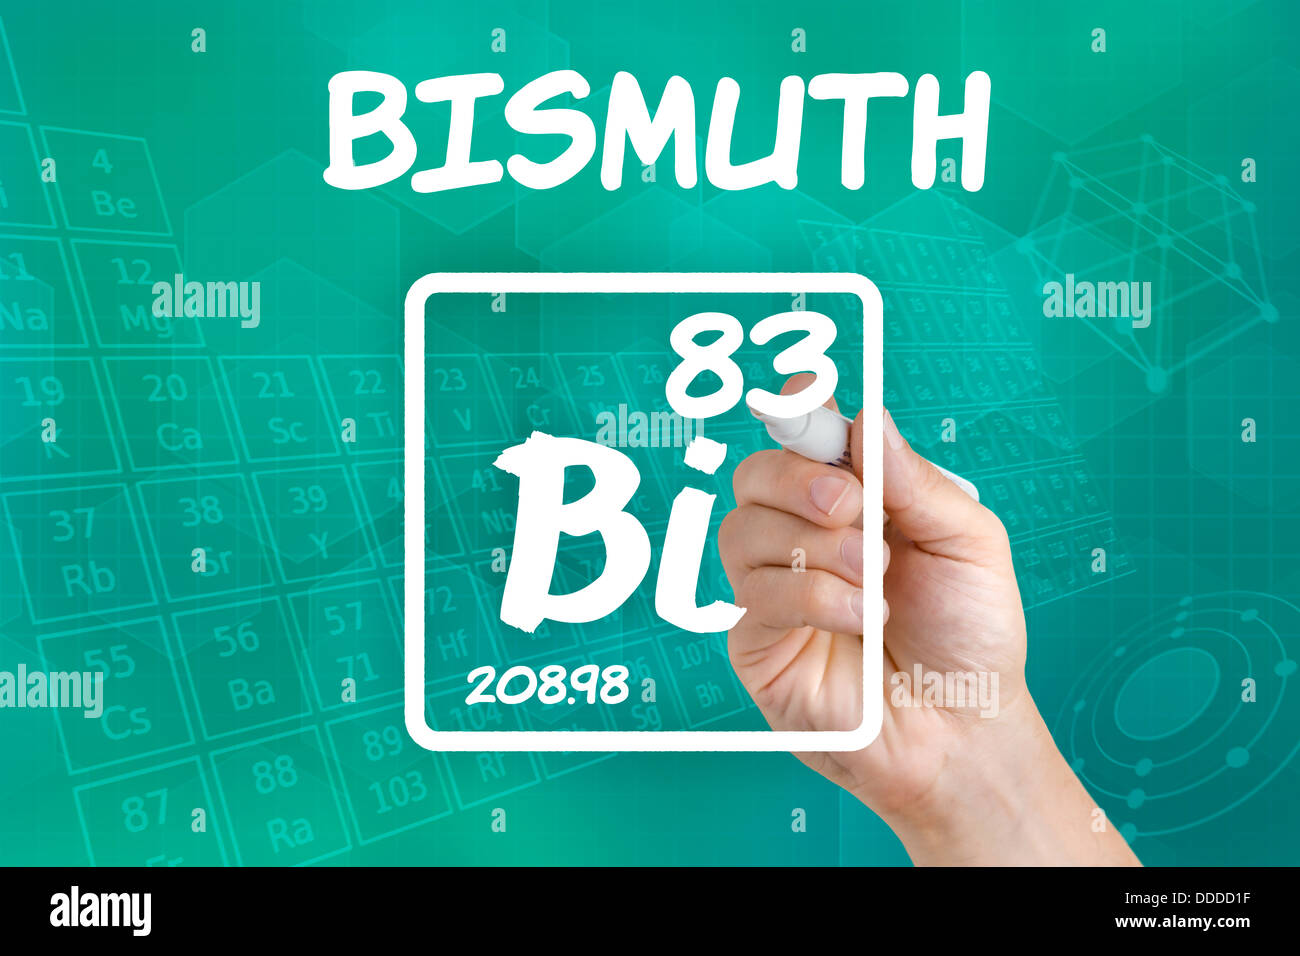 Symbol for the chemical element bismuth stock photo royalty free symbol for the chemical element bismuth buycottarizona